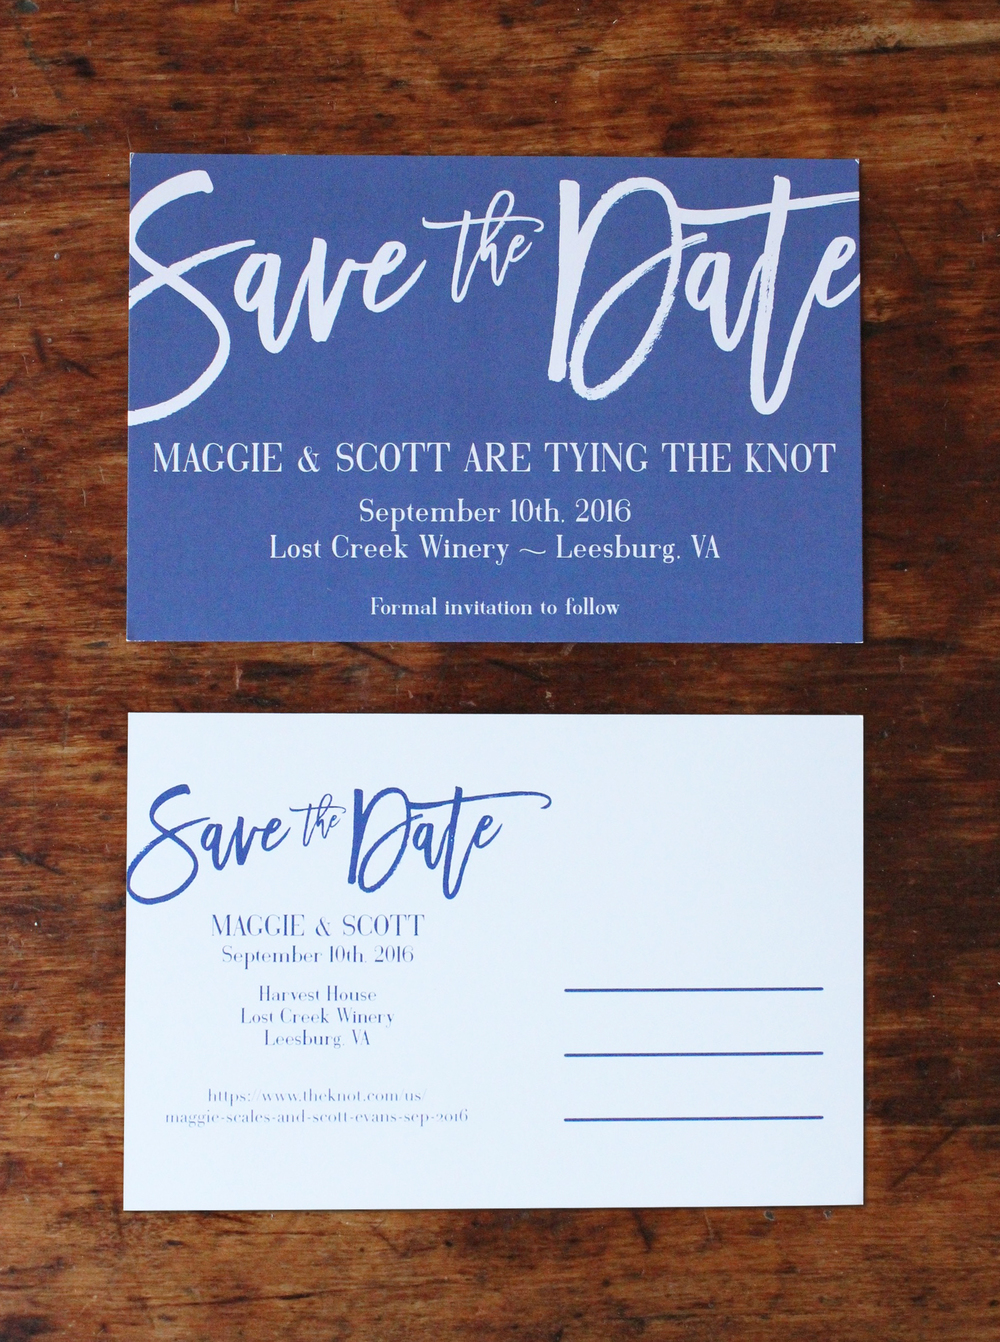 maggie & scott | save the date postcard